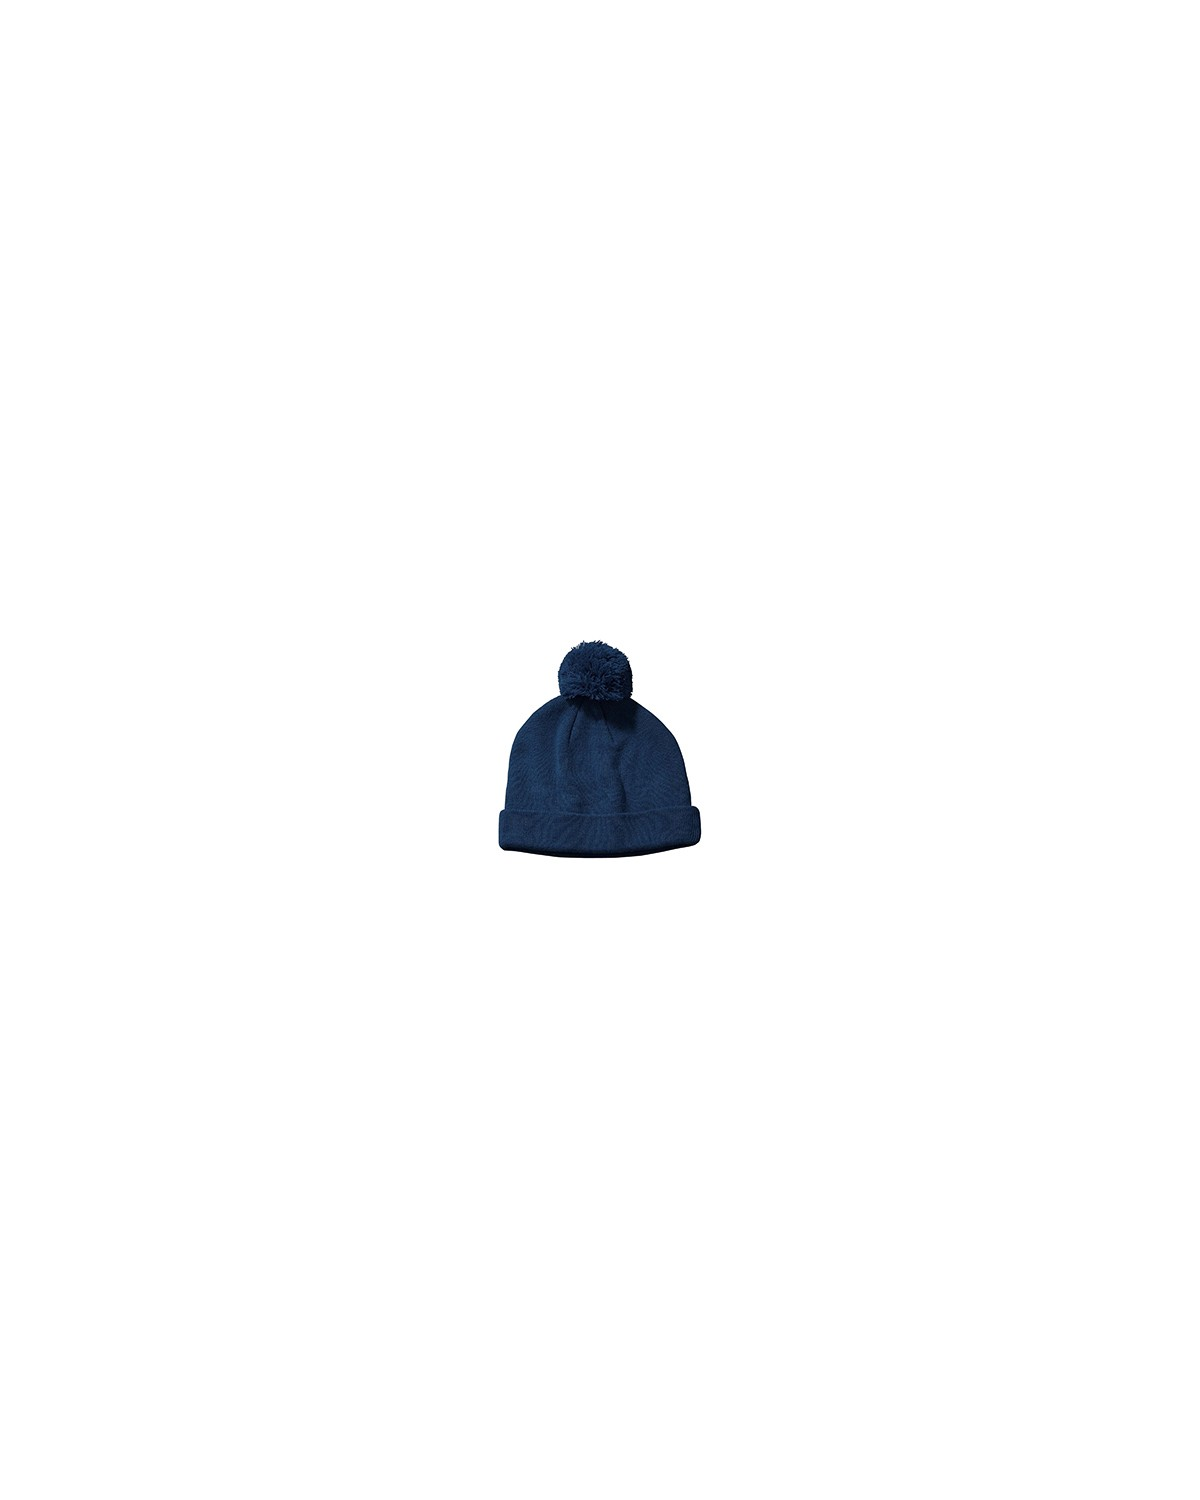 BX028 Big Accessories NAVY